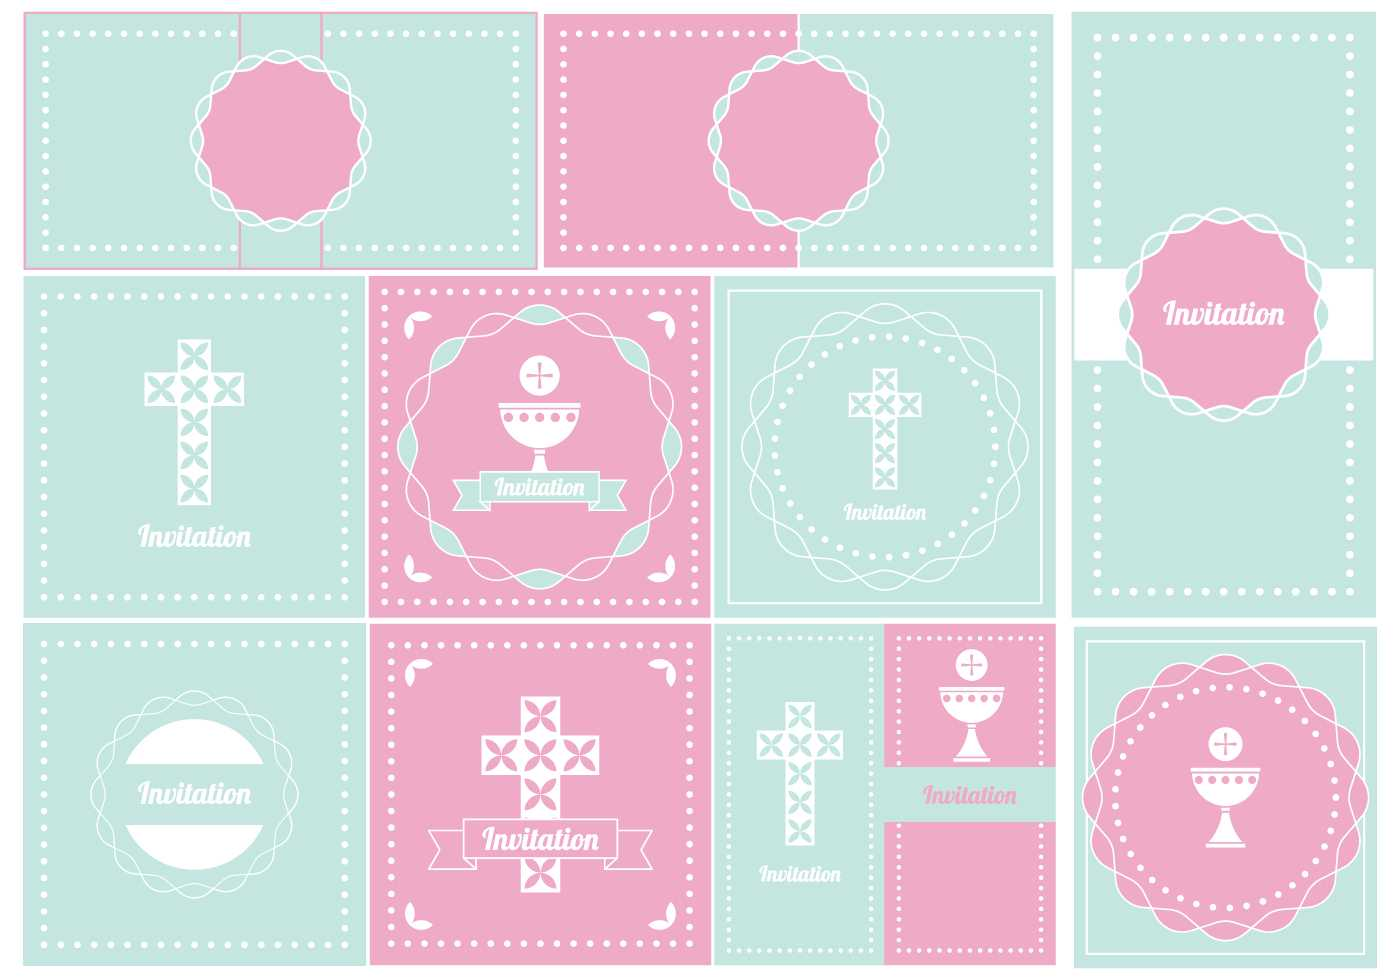 Baptism Banner Free Vector Art - (29 Free Downloads) Throughout Christening Banner Template Free